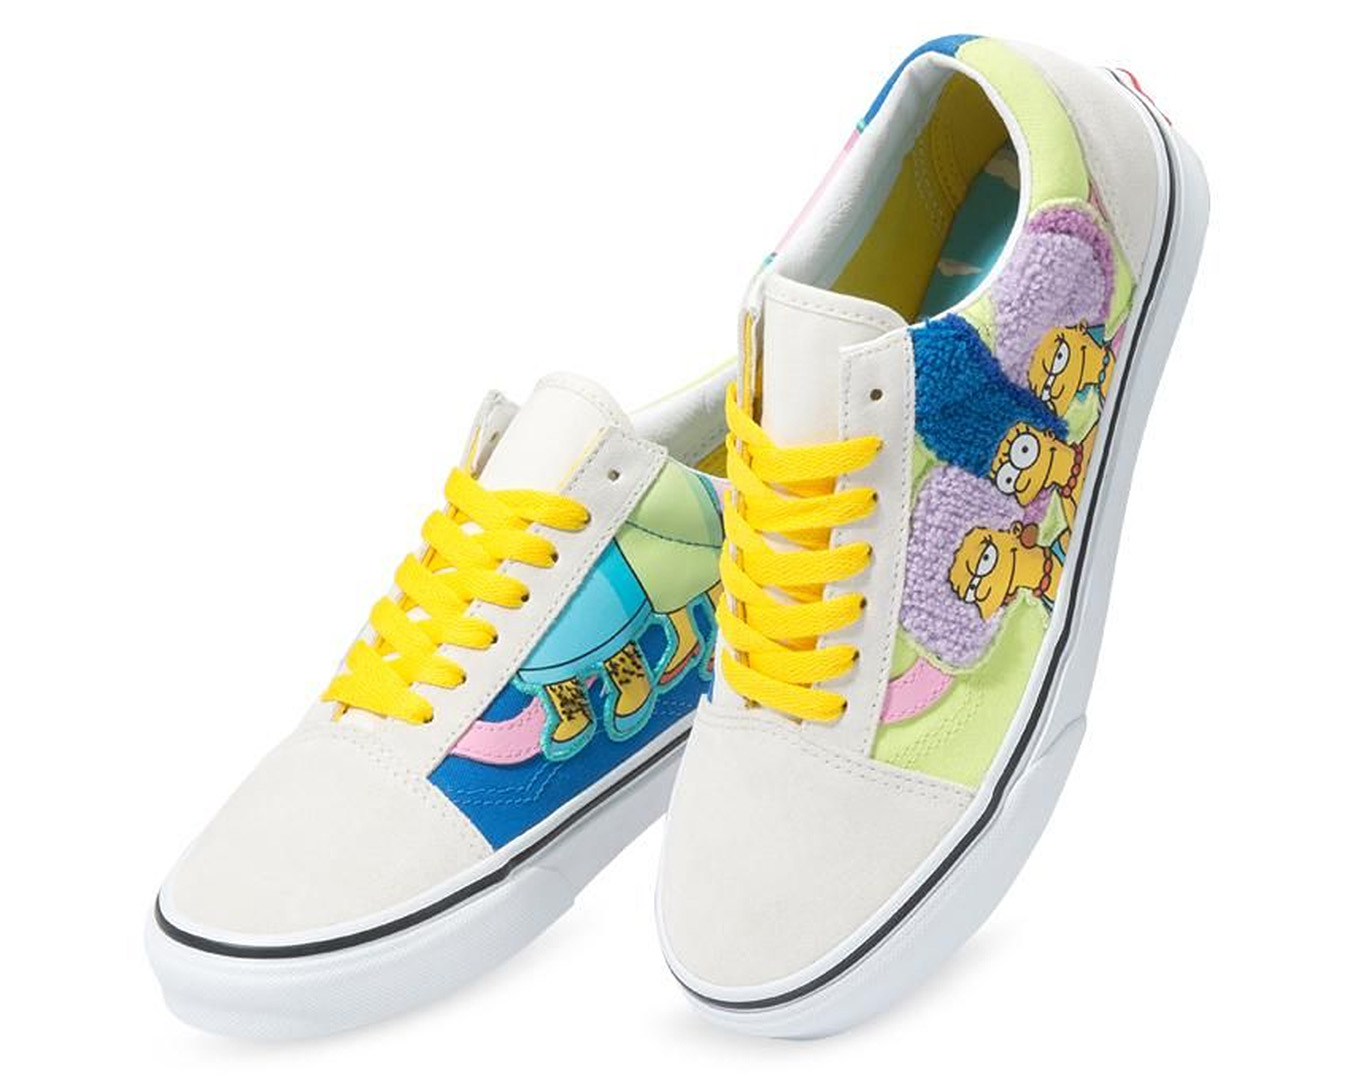 The Bouvier Sisters feature on these Vans Old Skool type of trainers.